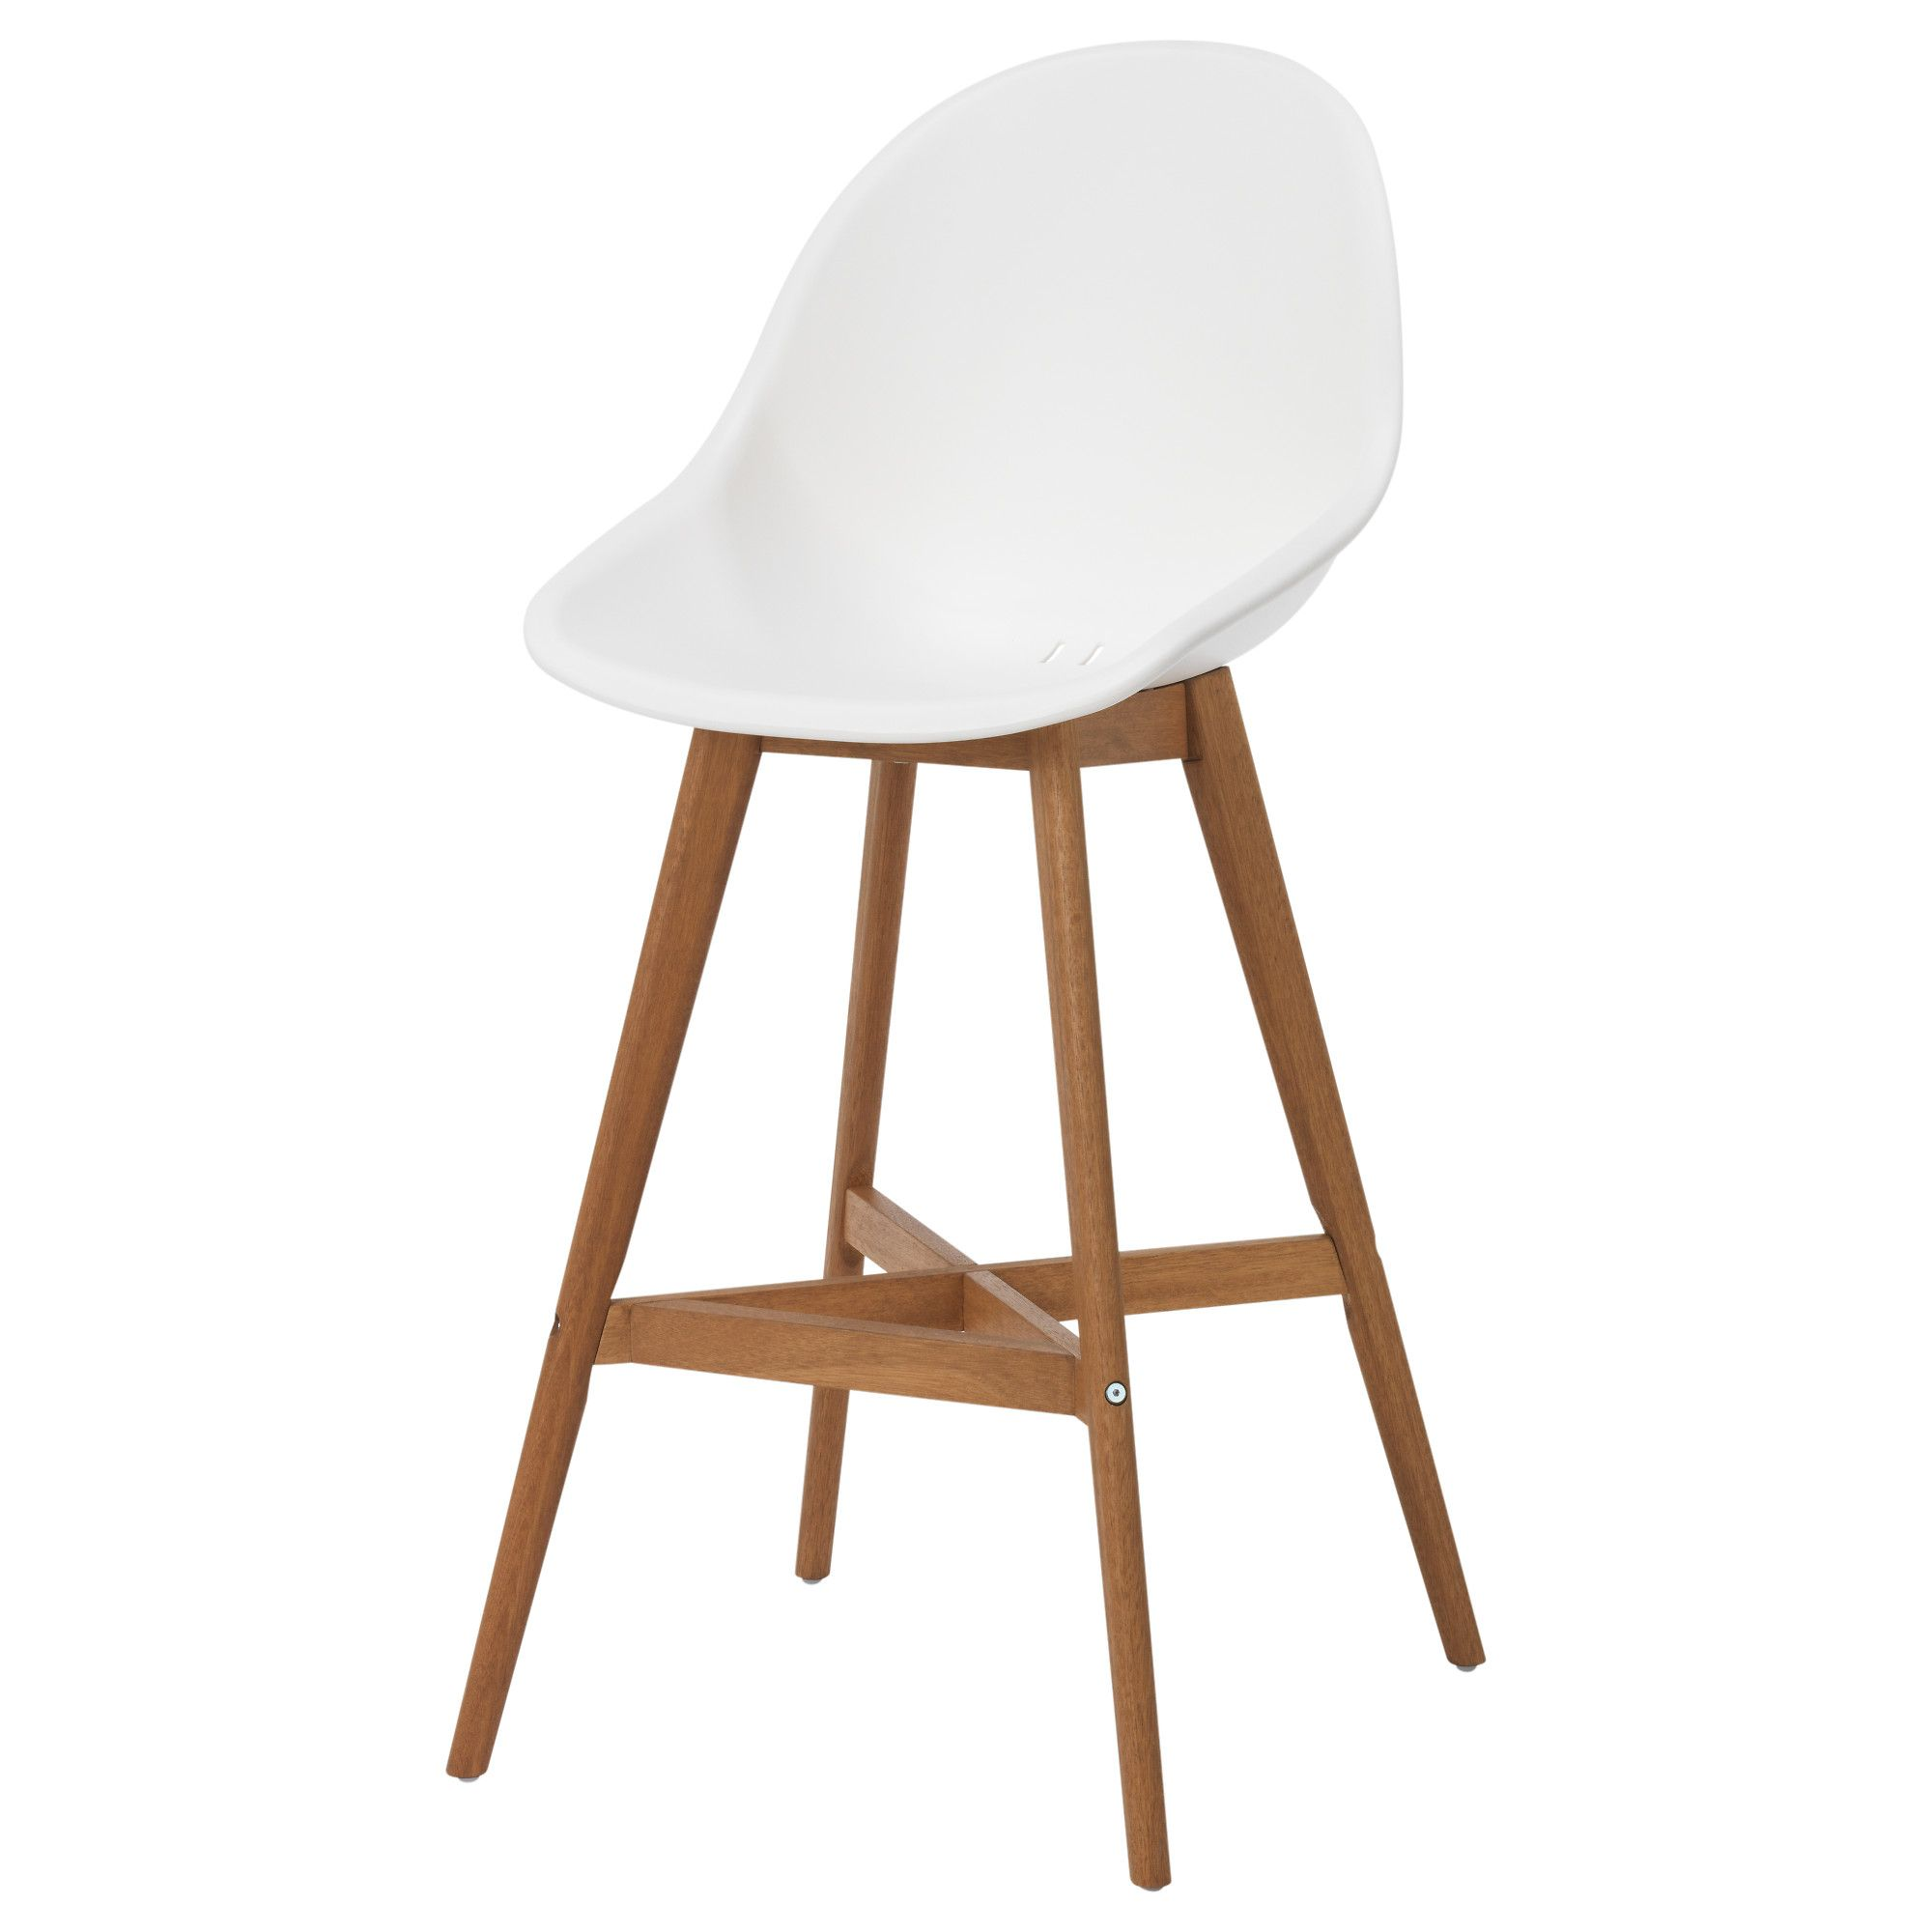 FANBYN Bar stool with backrest White 74 cm | Bar stool and Stools